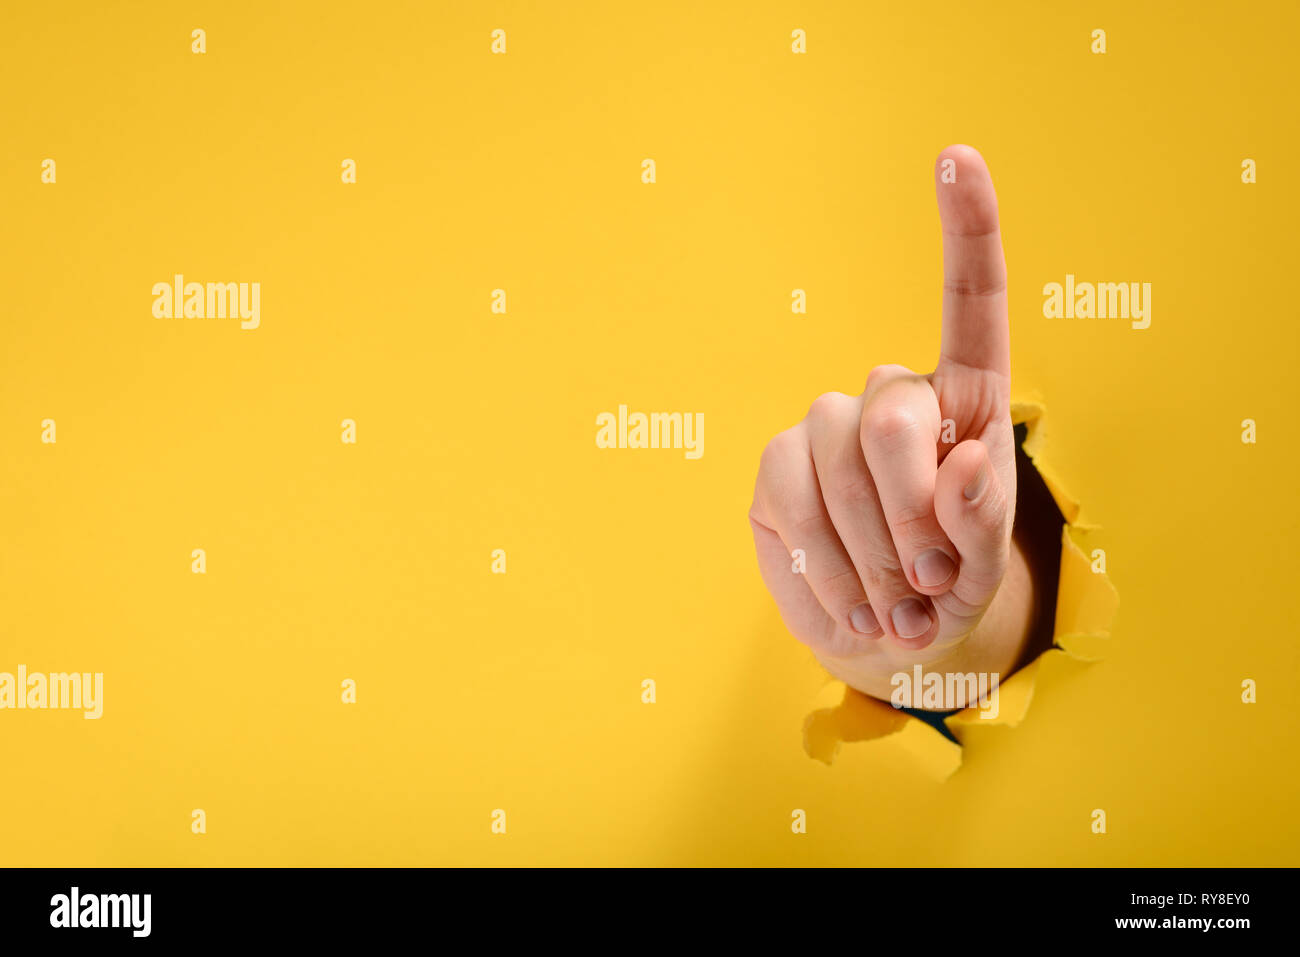 Hand pointing up - Stock Image